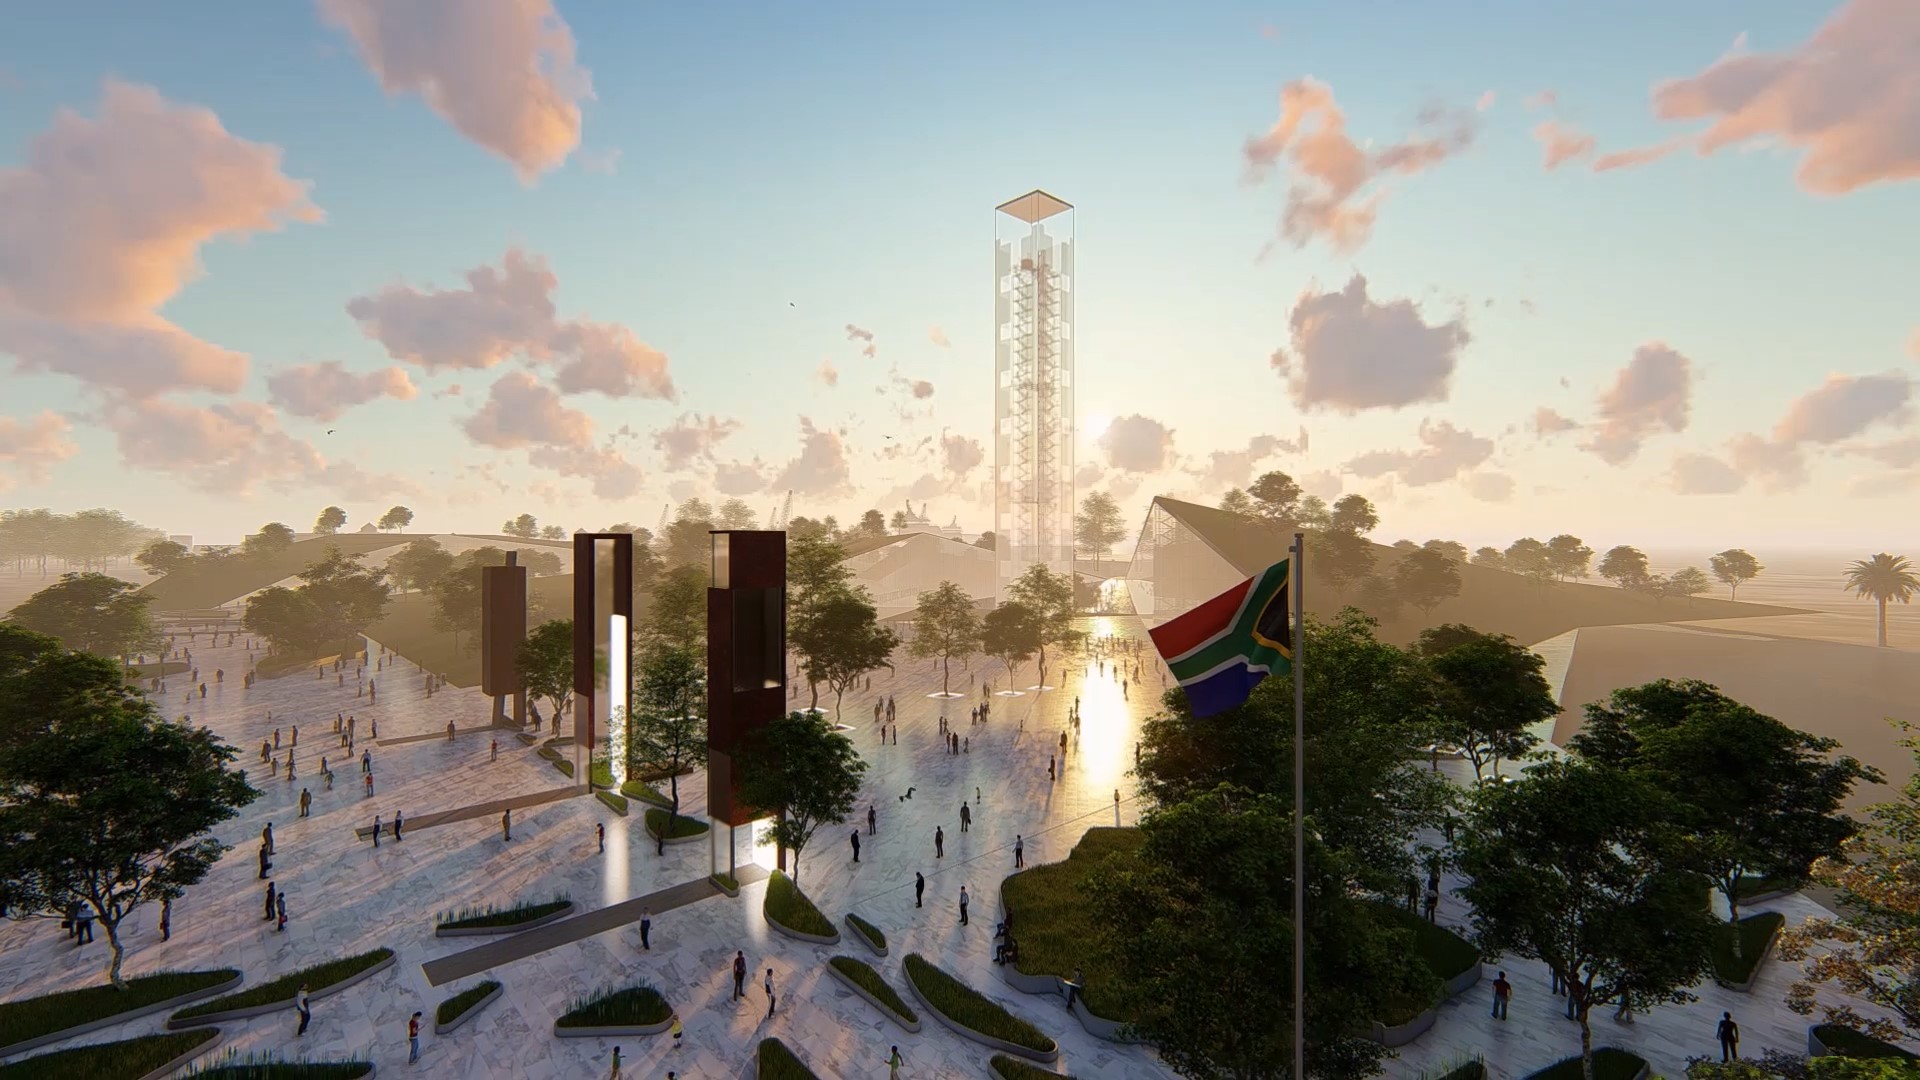 THE NELSON MANDELA TOWER OF LIGHT